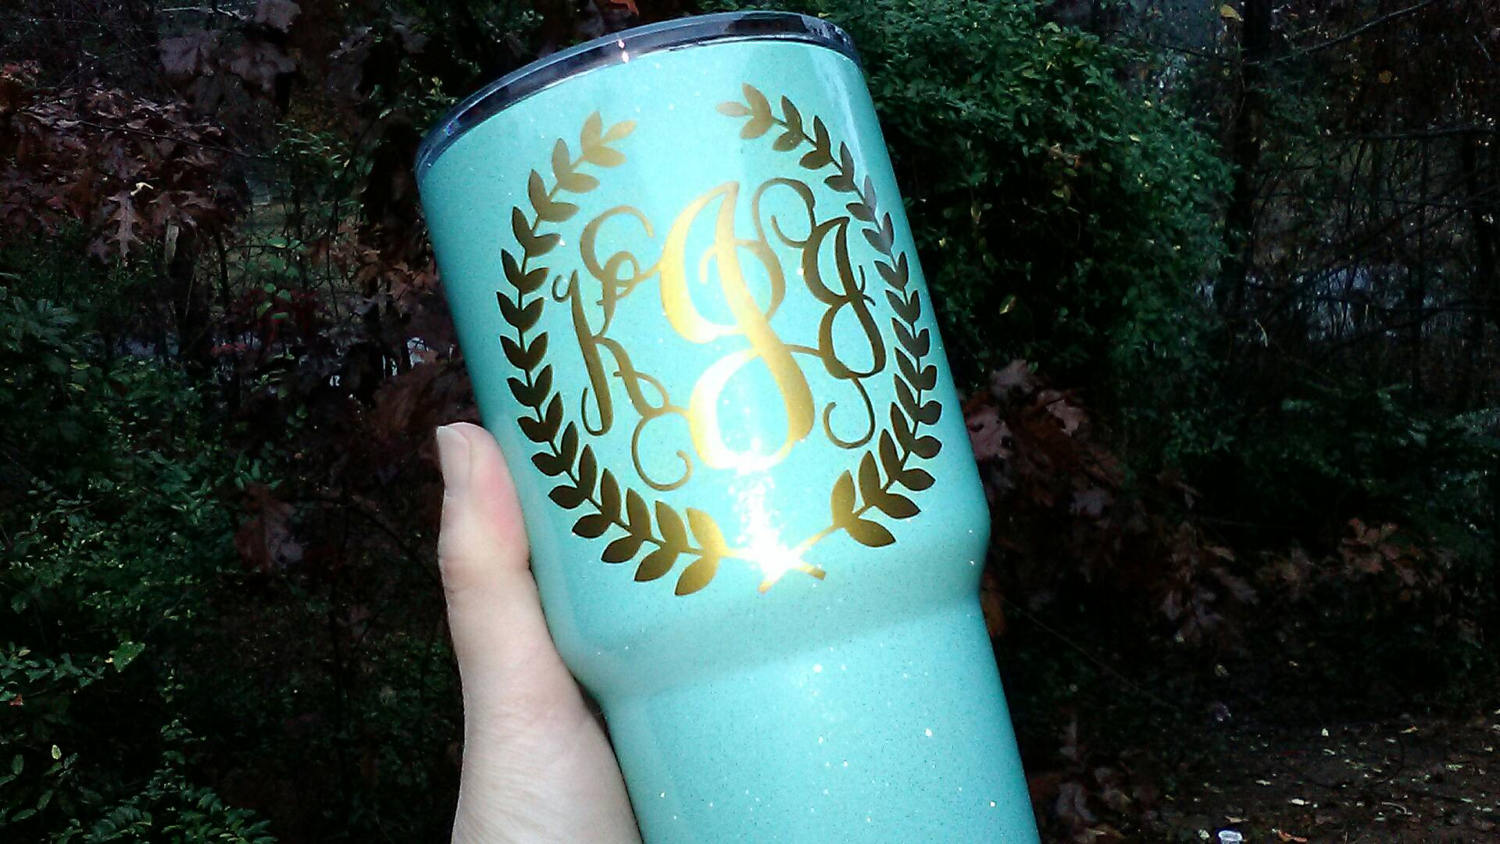 Wreath Monogram Vinyl Decal for cup